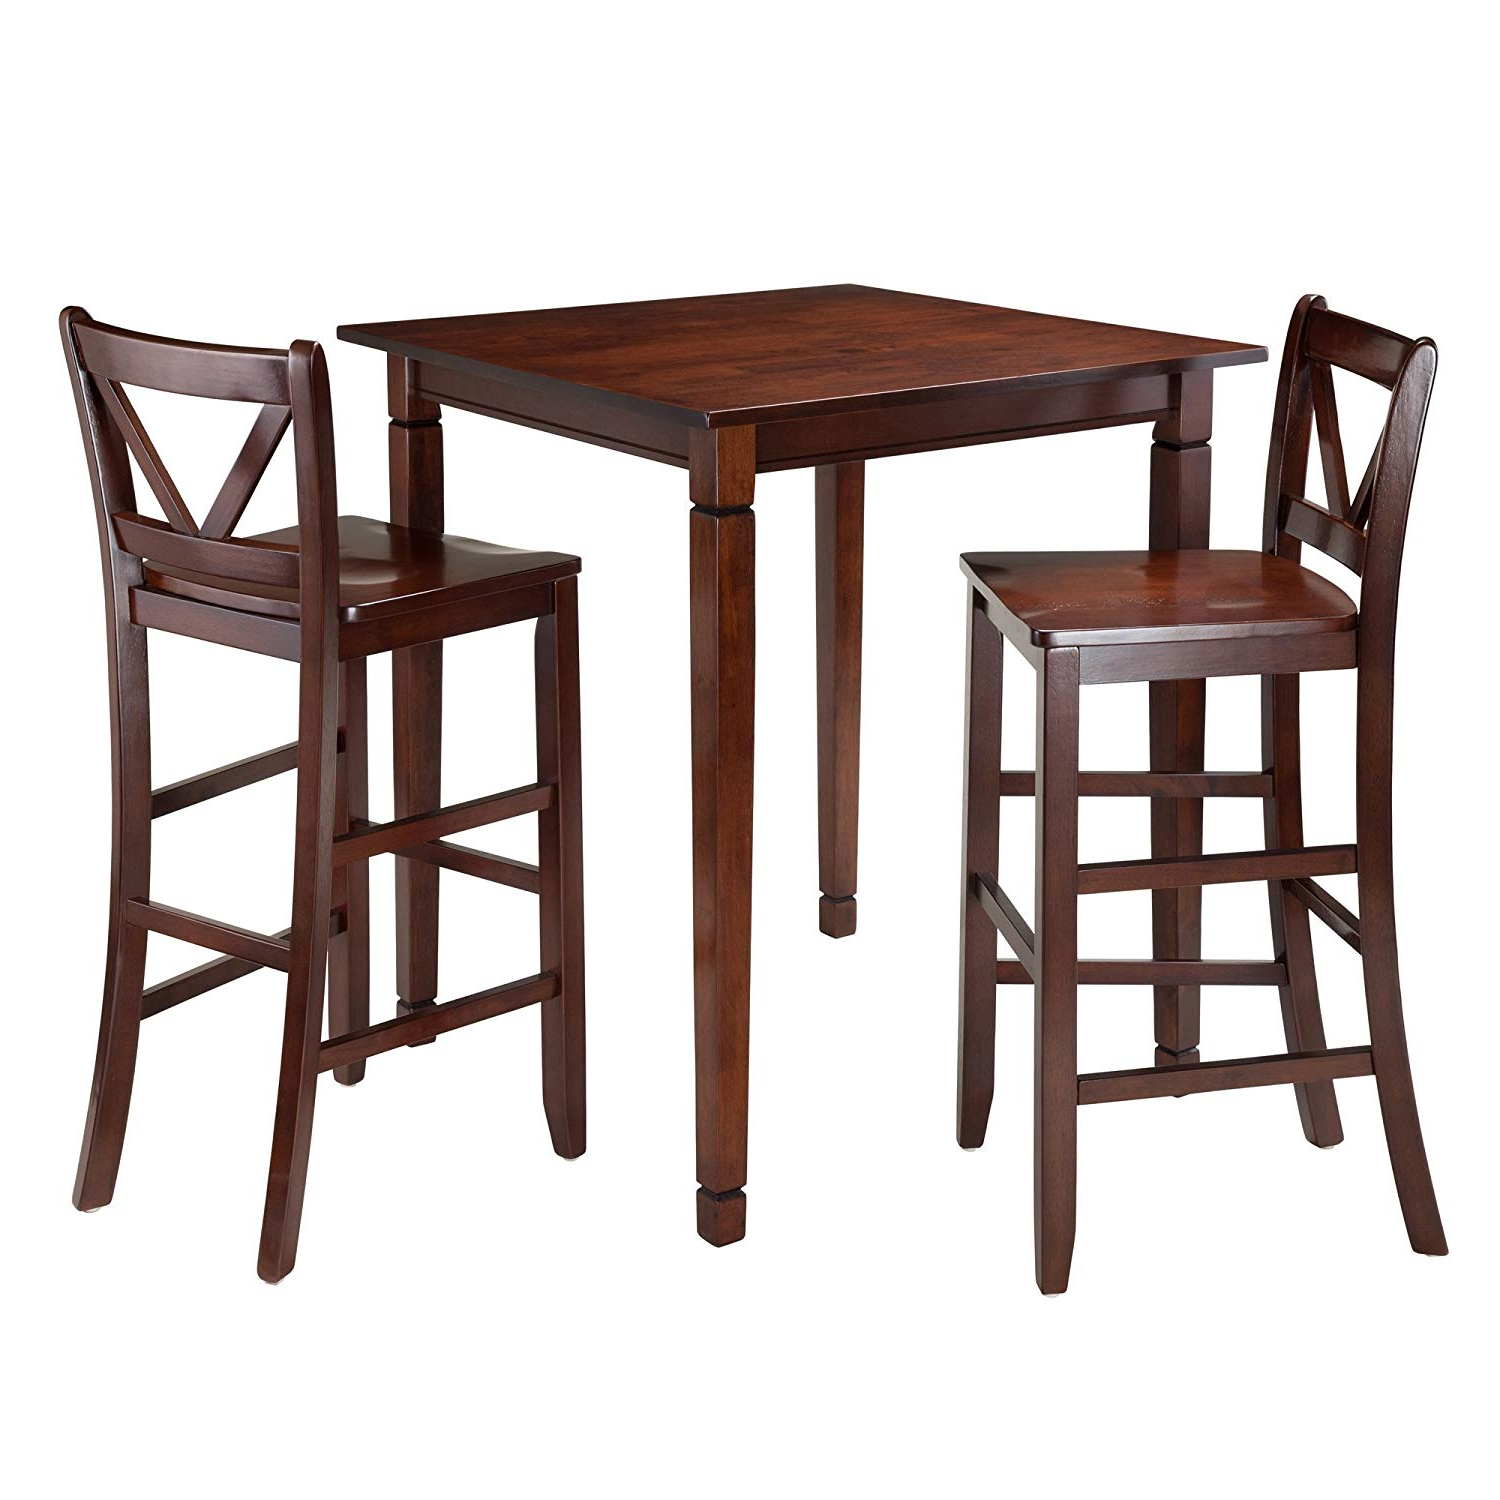 Winsome 3 Piece Counter Height Dining Sets With Regard To Trendy Amazon – Winsome 3 Piece Kingsgate Dining Table With 2 Bar V (View 2 of 25)